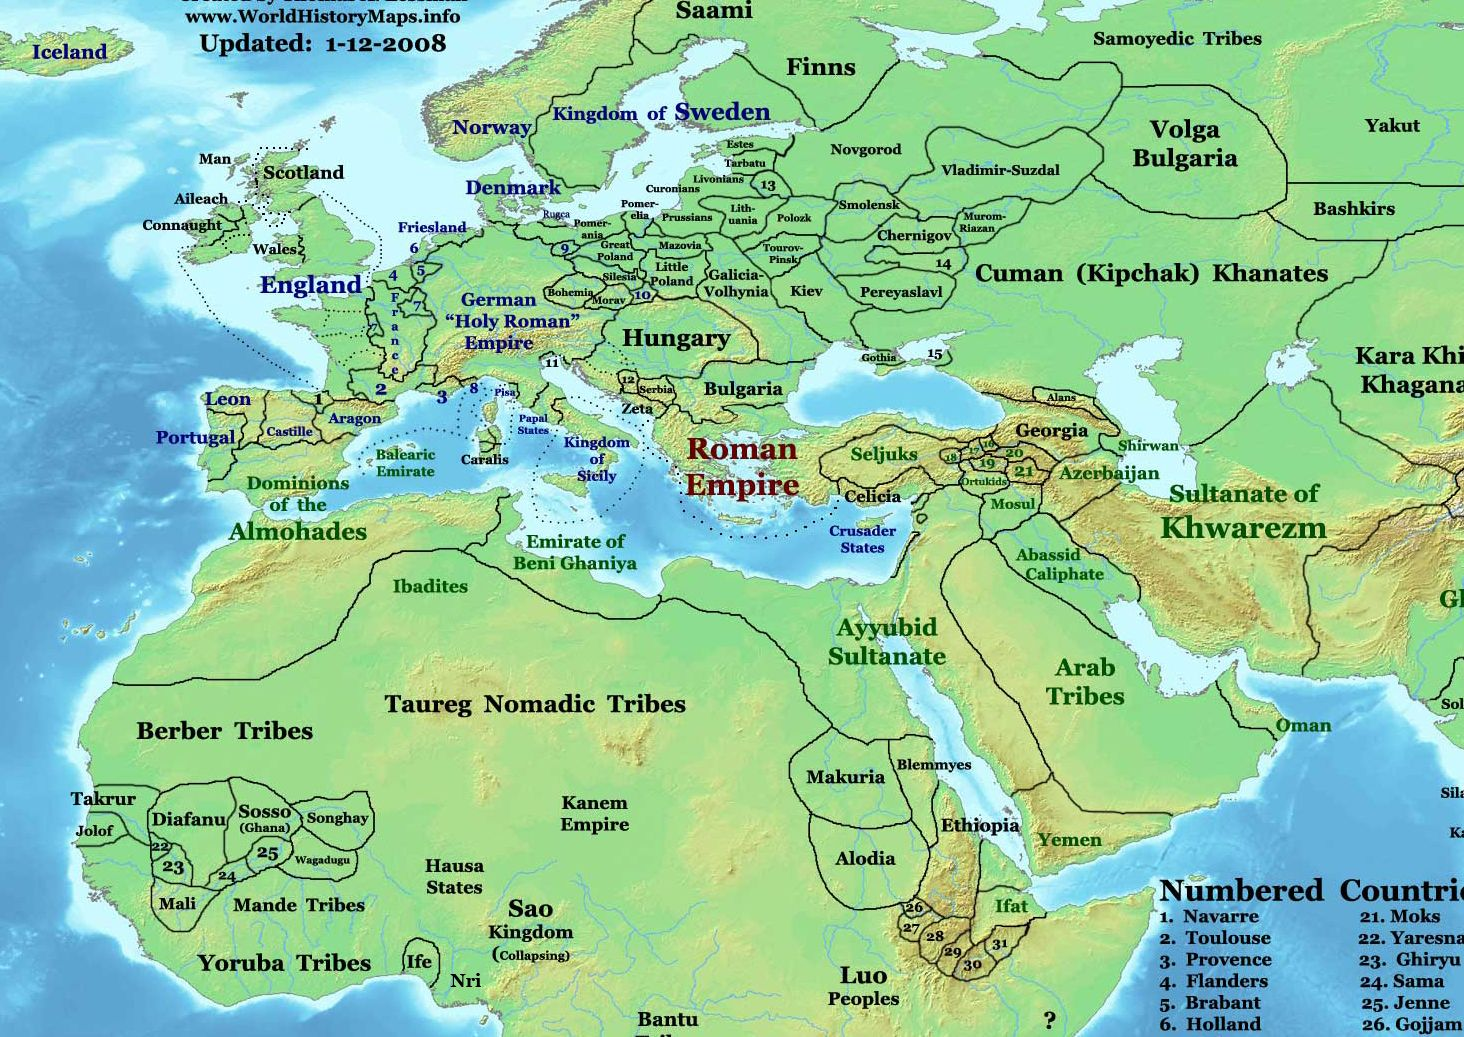 Africa And Near East In 1200 Ad Showing Kingdom Of Wagadugu And